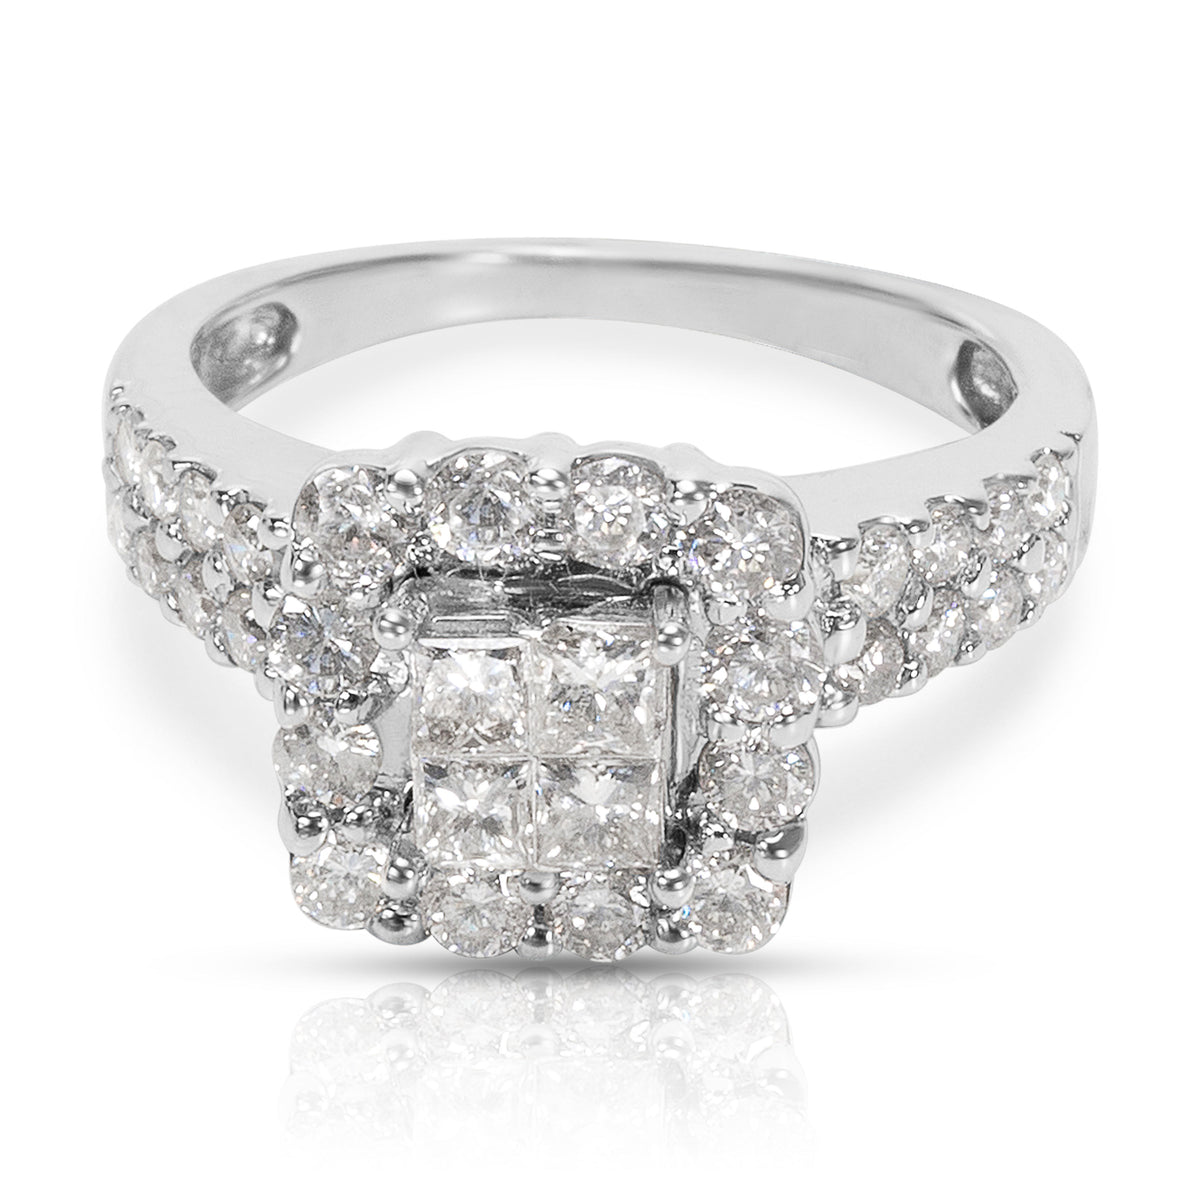 BRAND NEW Diamond Engagement Ring in 14K White Gold (1.25 CTW)